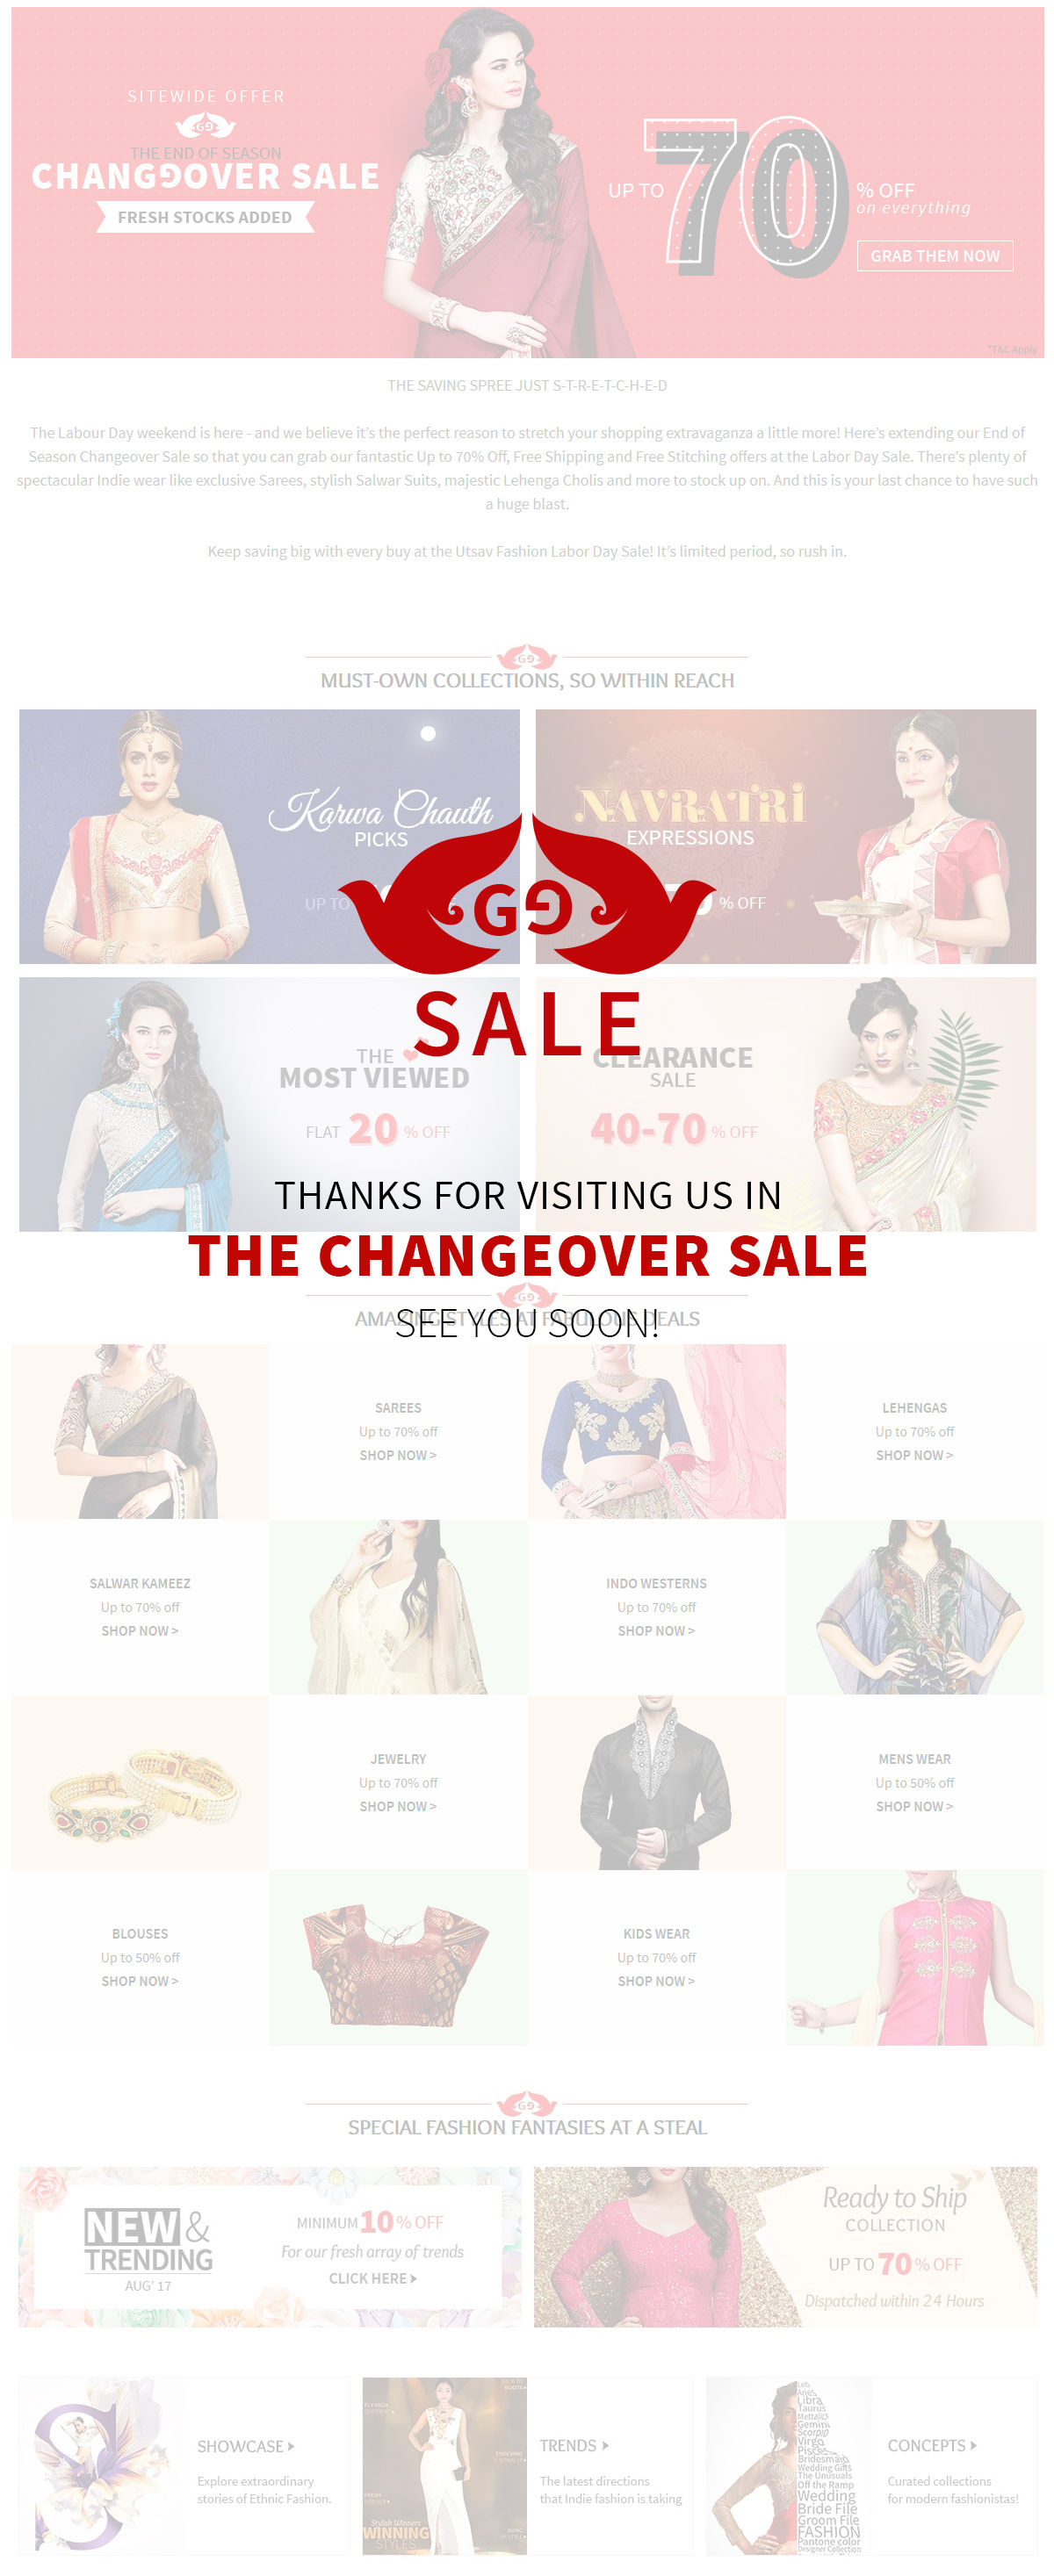 Thanks for visiting us in THE CHANGEOVER SALE see you soon!